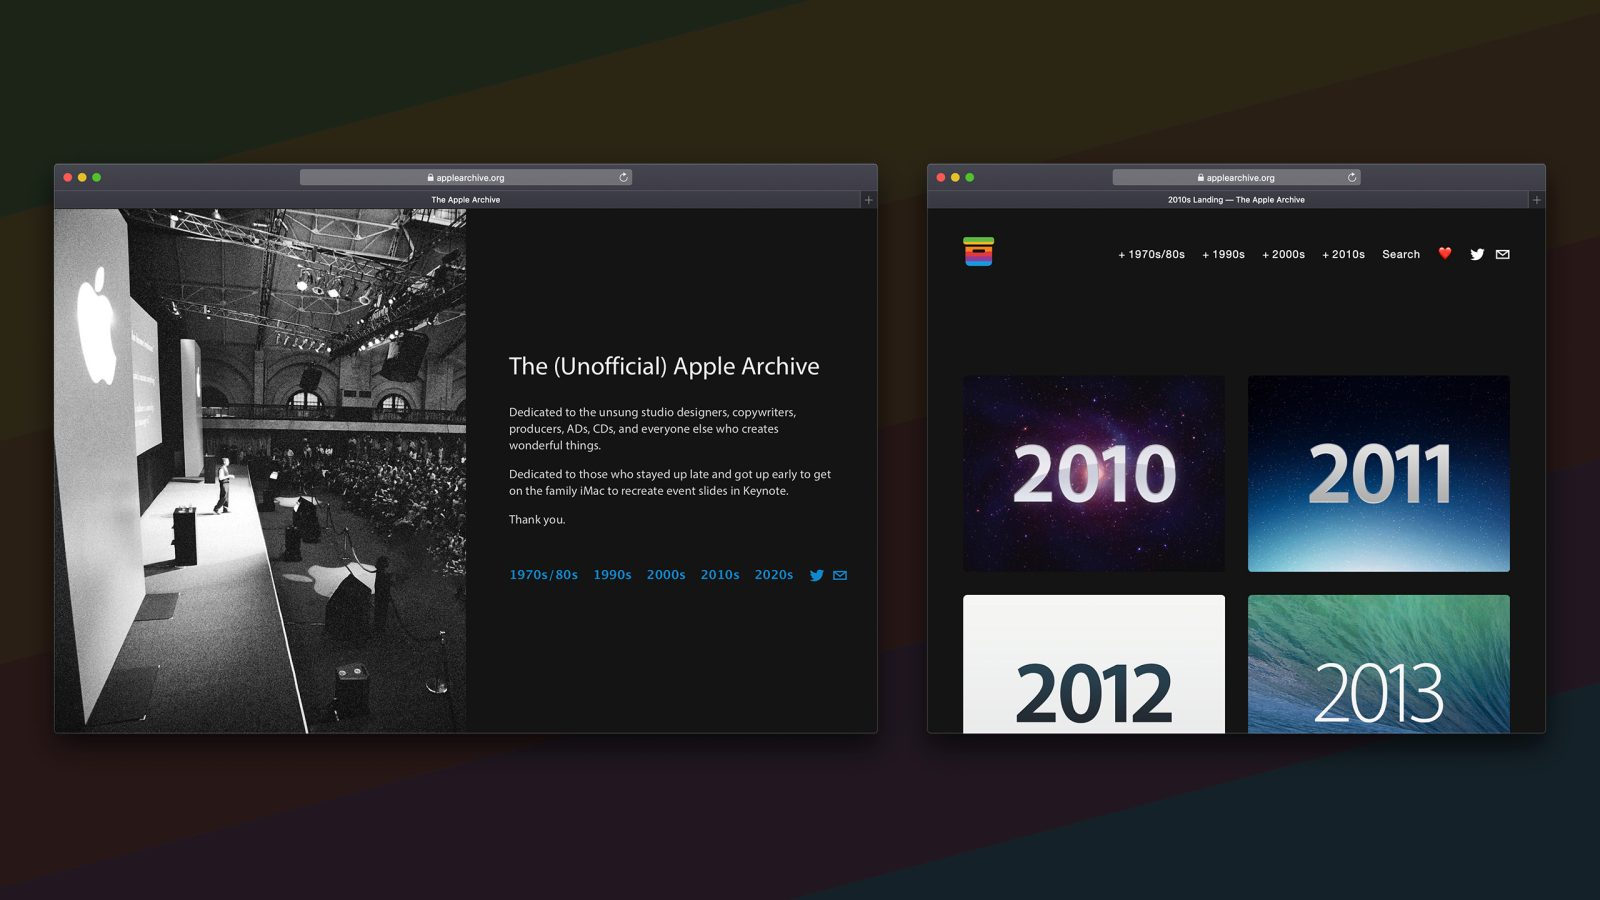 The unofficial Apple archive is dying